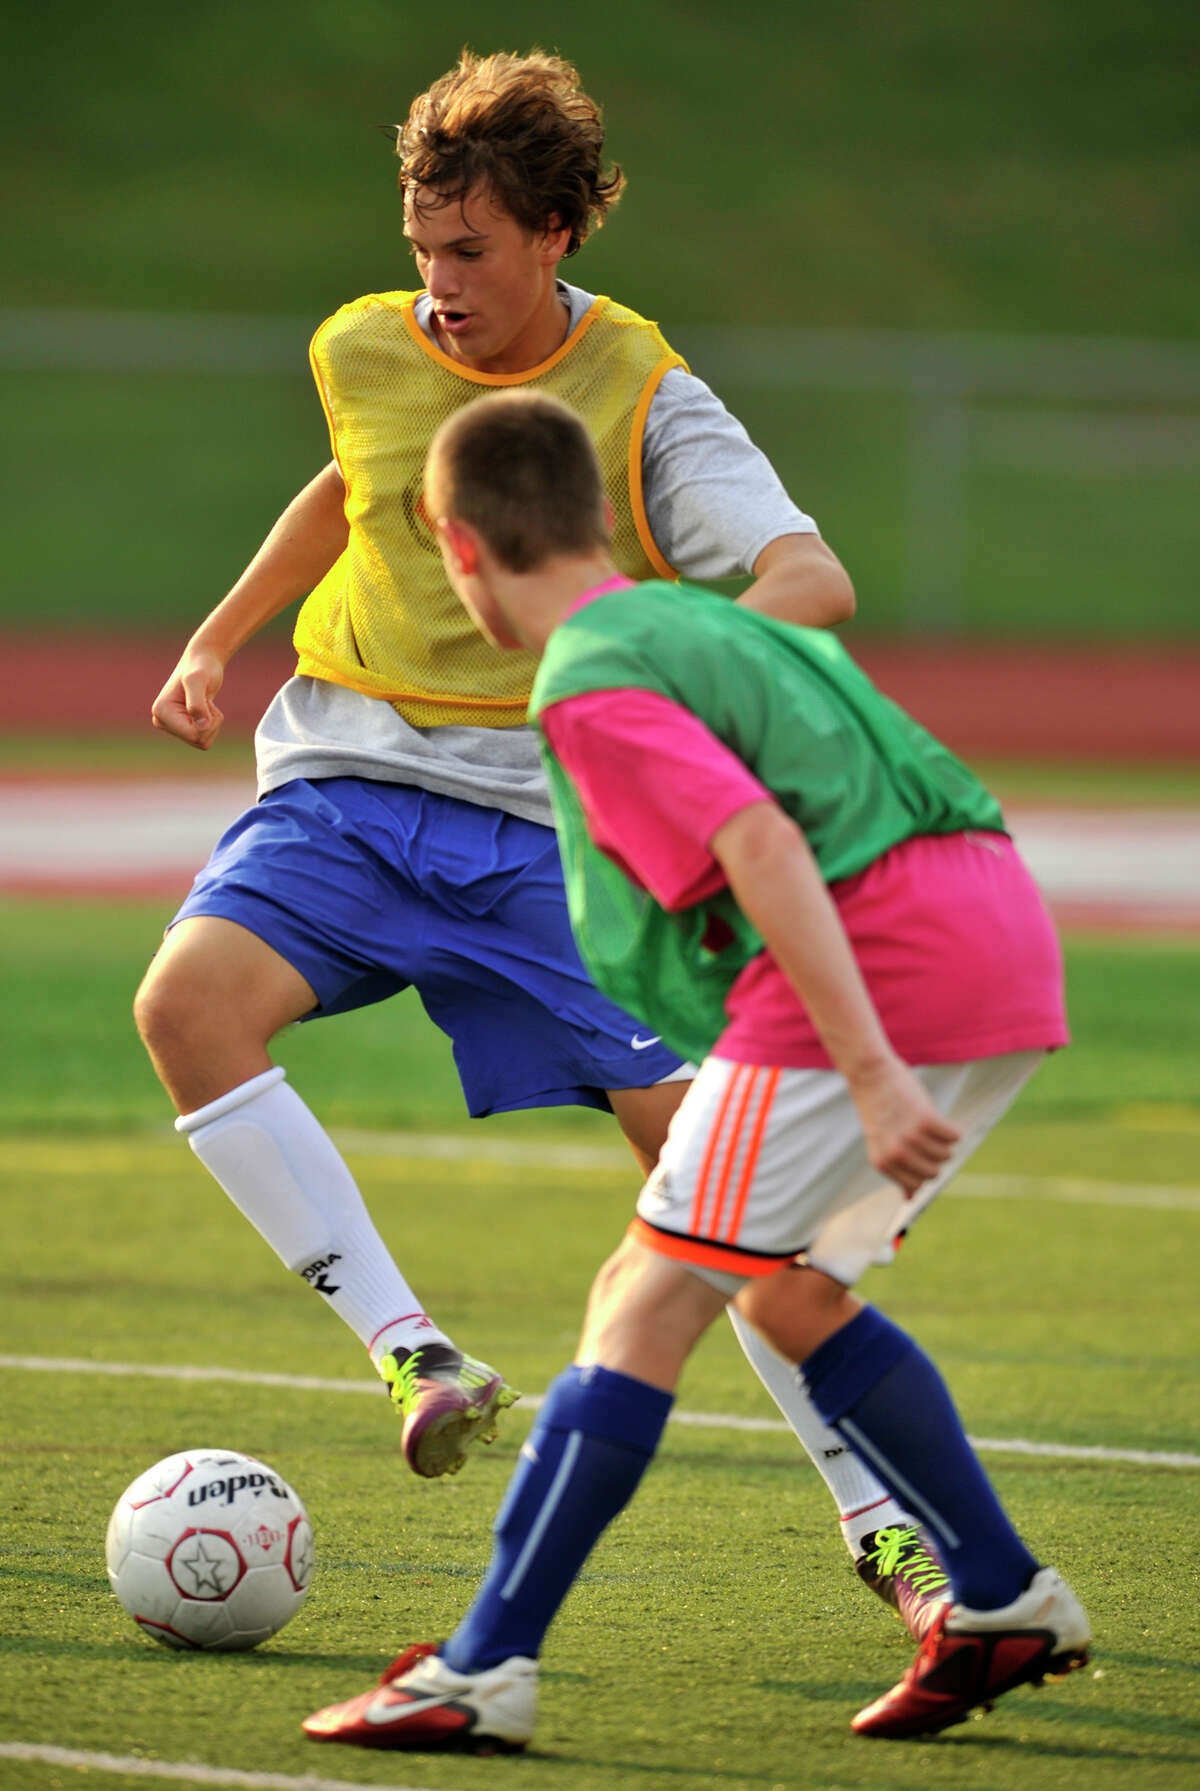 Midfielder Tyler Longo dribbles the ball during soccer practice at Pomperaug High School in Southbury on Friday, Sept. 7, 2012.